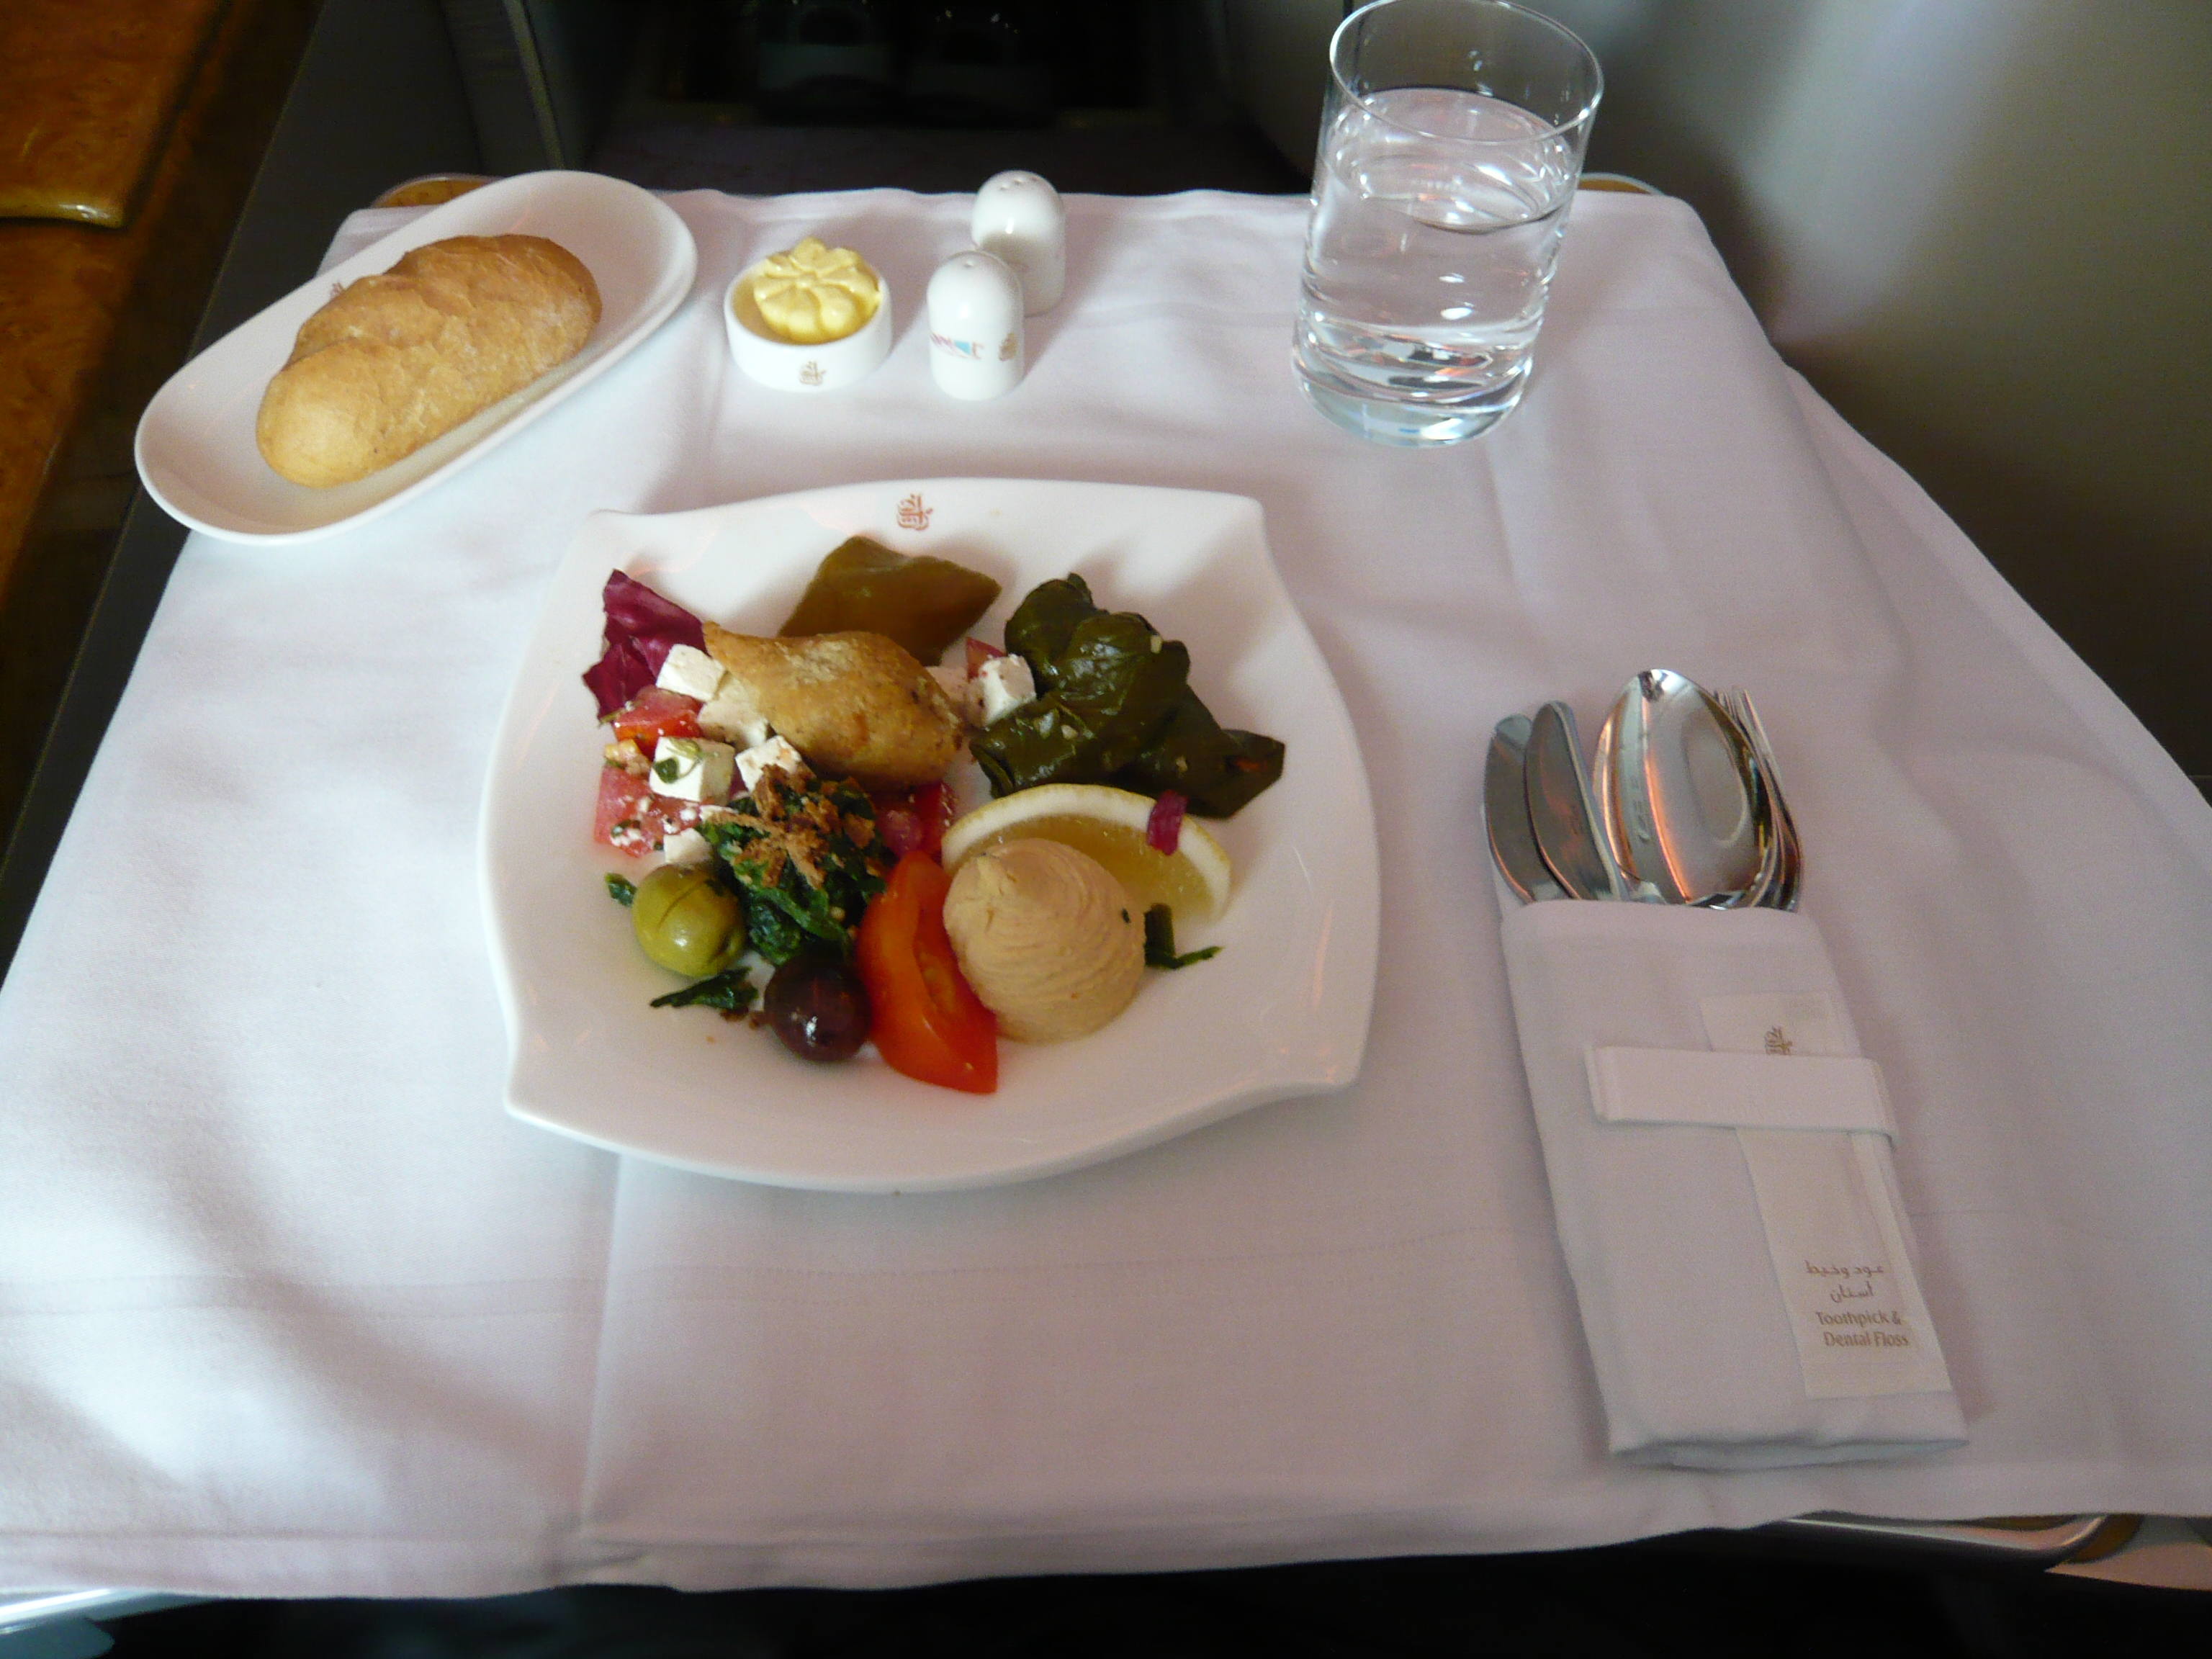 Emirates Business Class Food File:Emirates Business...